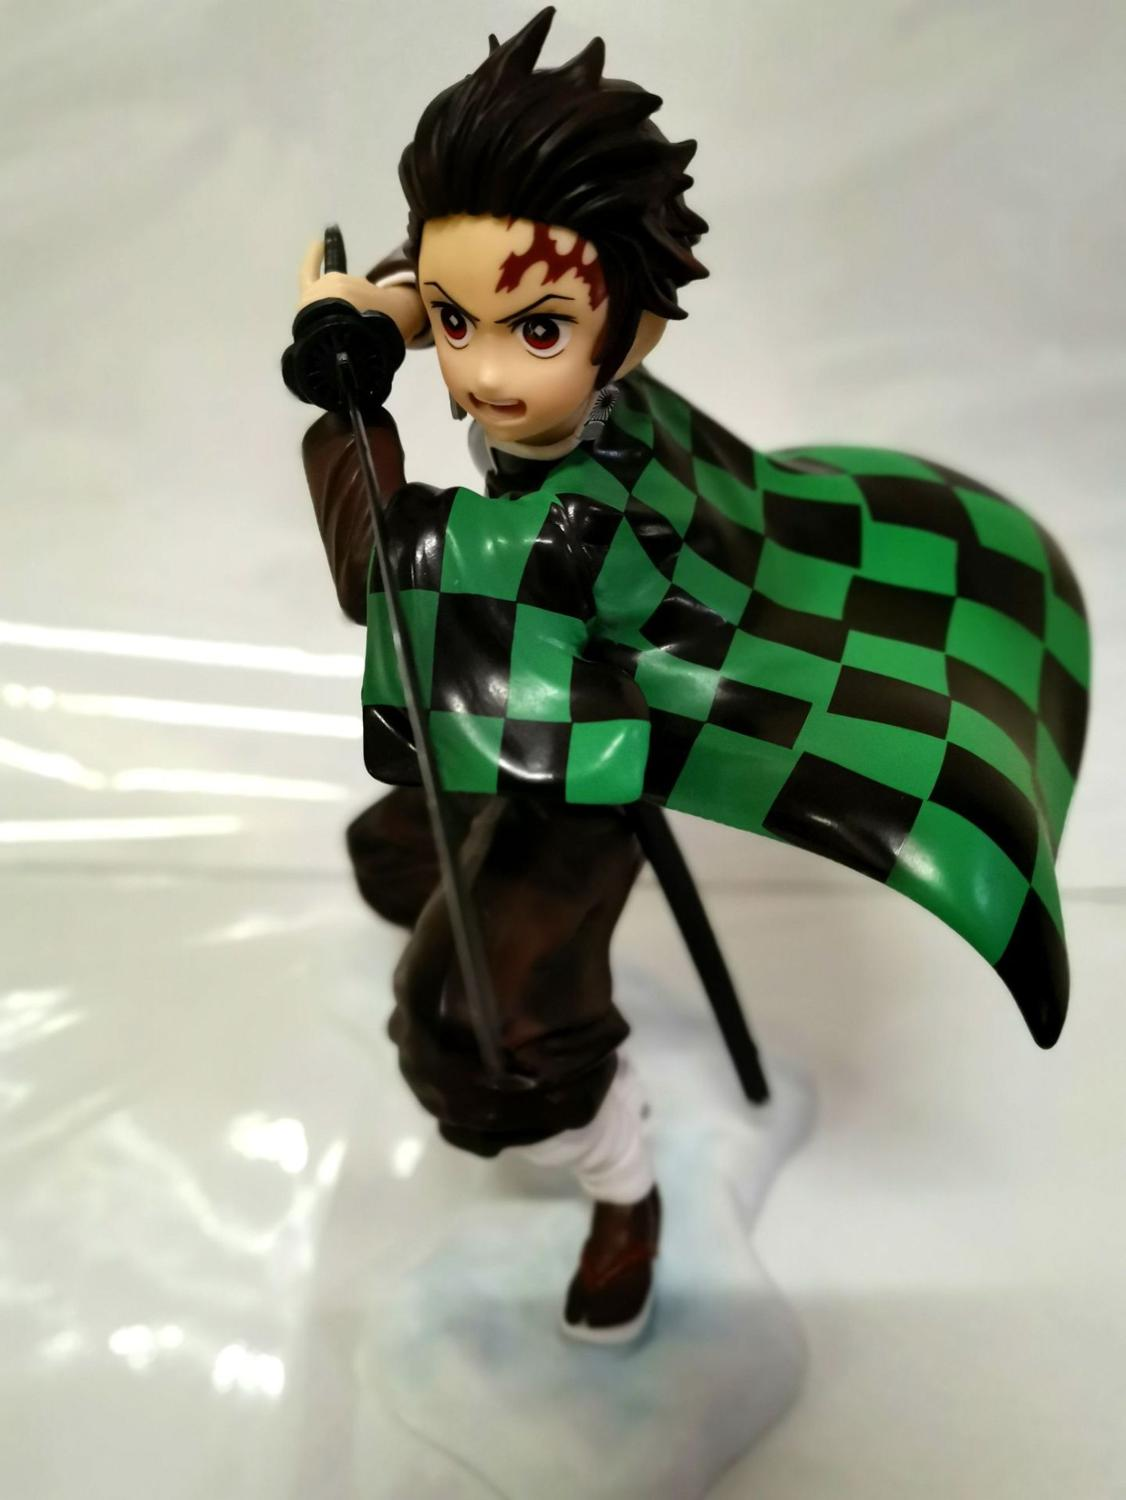 Free shipping Demon Slayer Kimetsu no Yaiba Kamado Tanjirou Agatsuma Zenitsu Kamado Nezuko PVC Action Figure Collection Toys B19 1